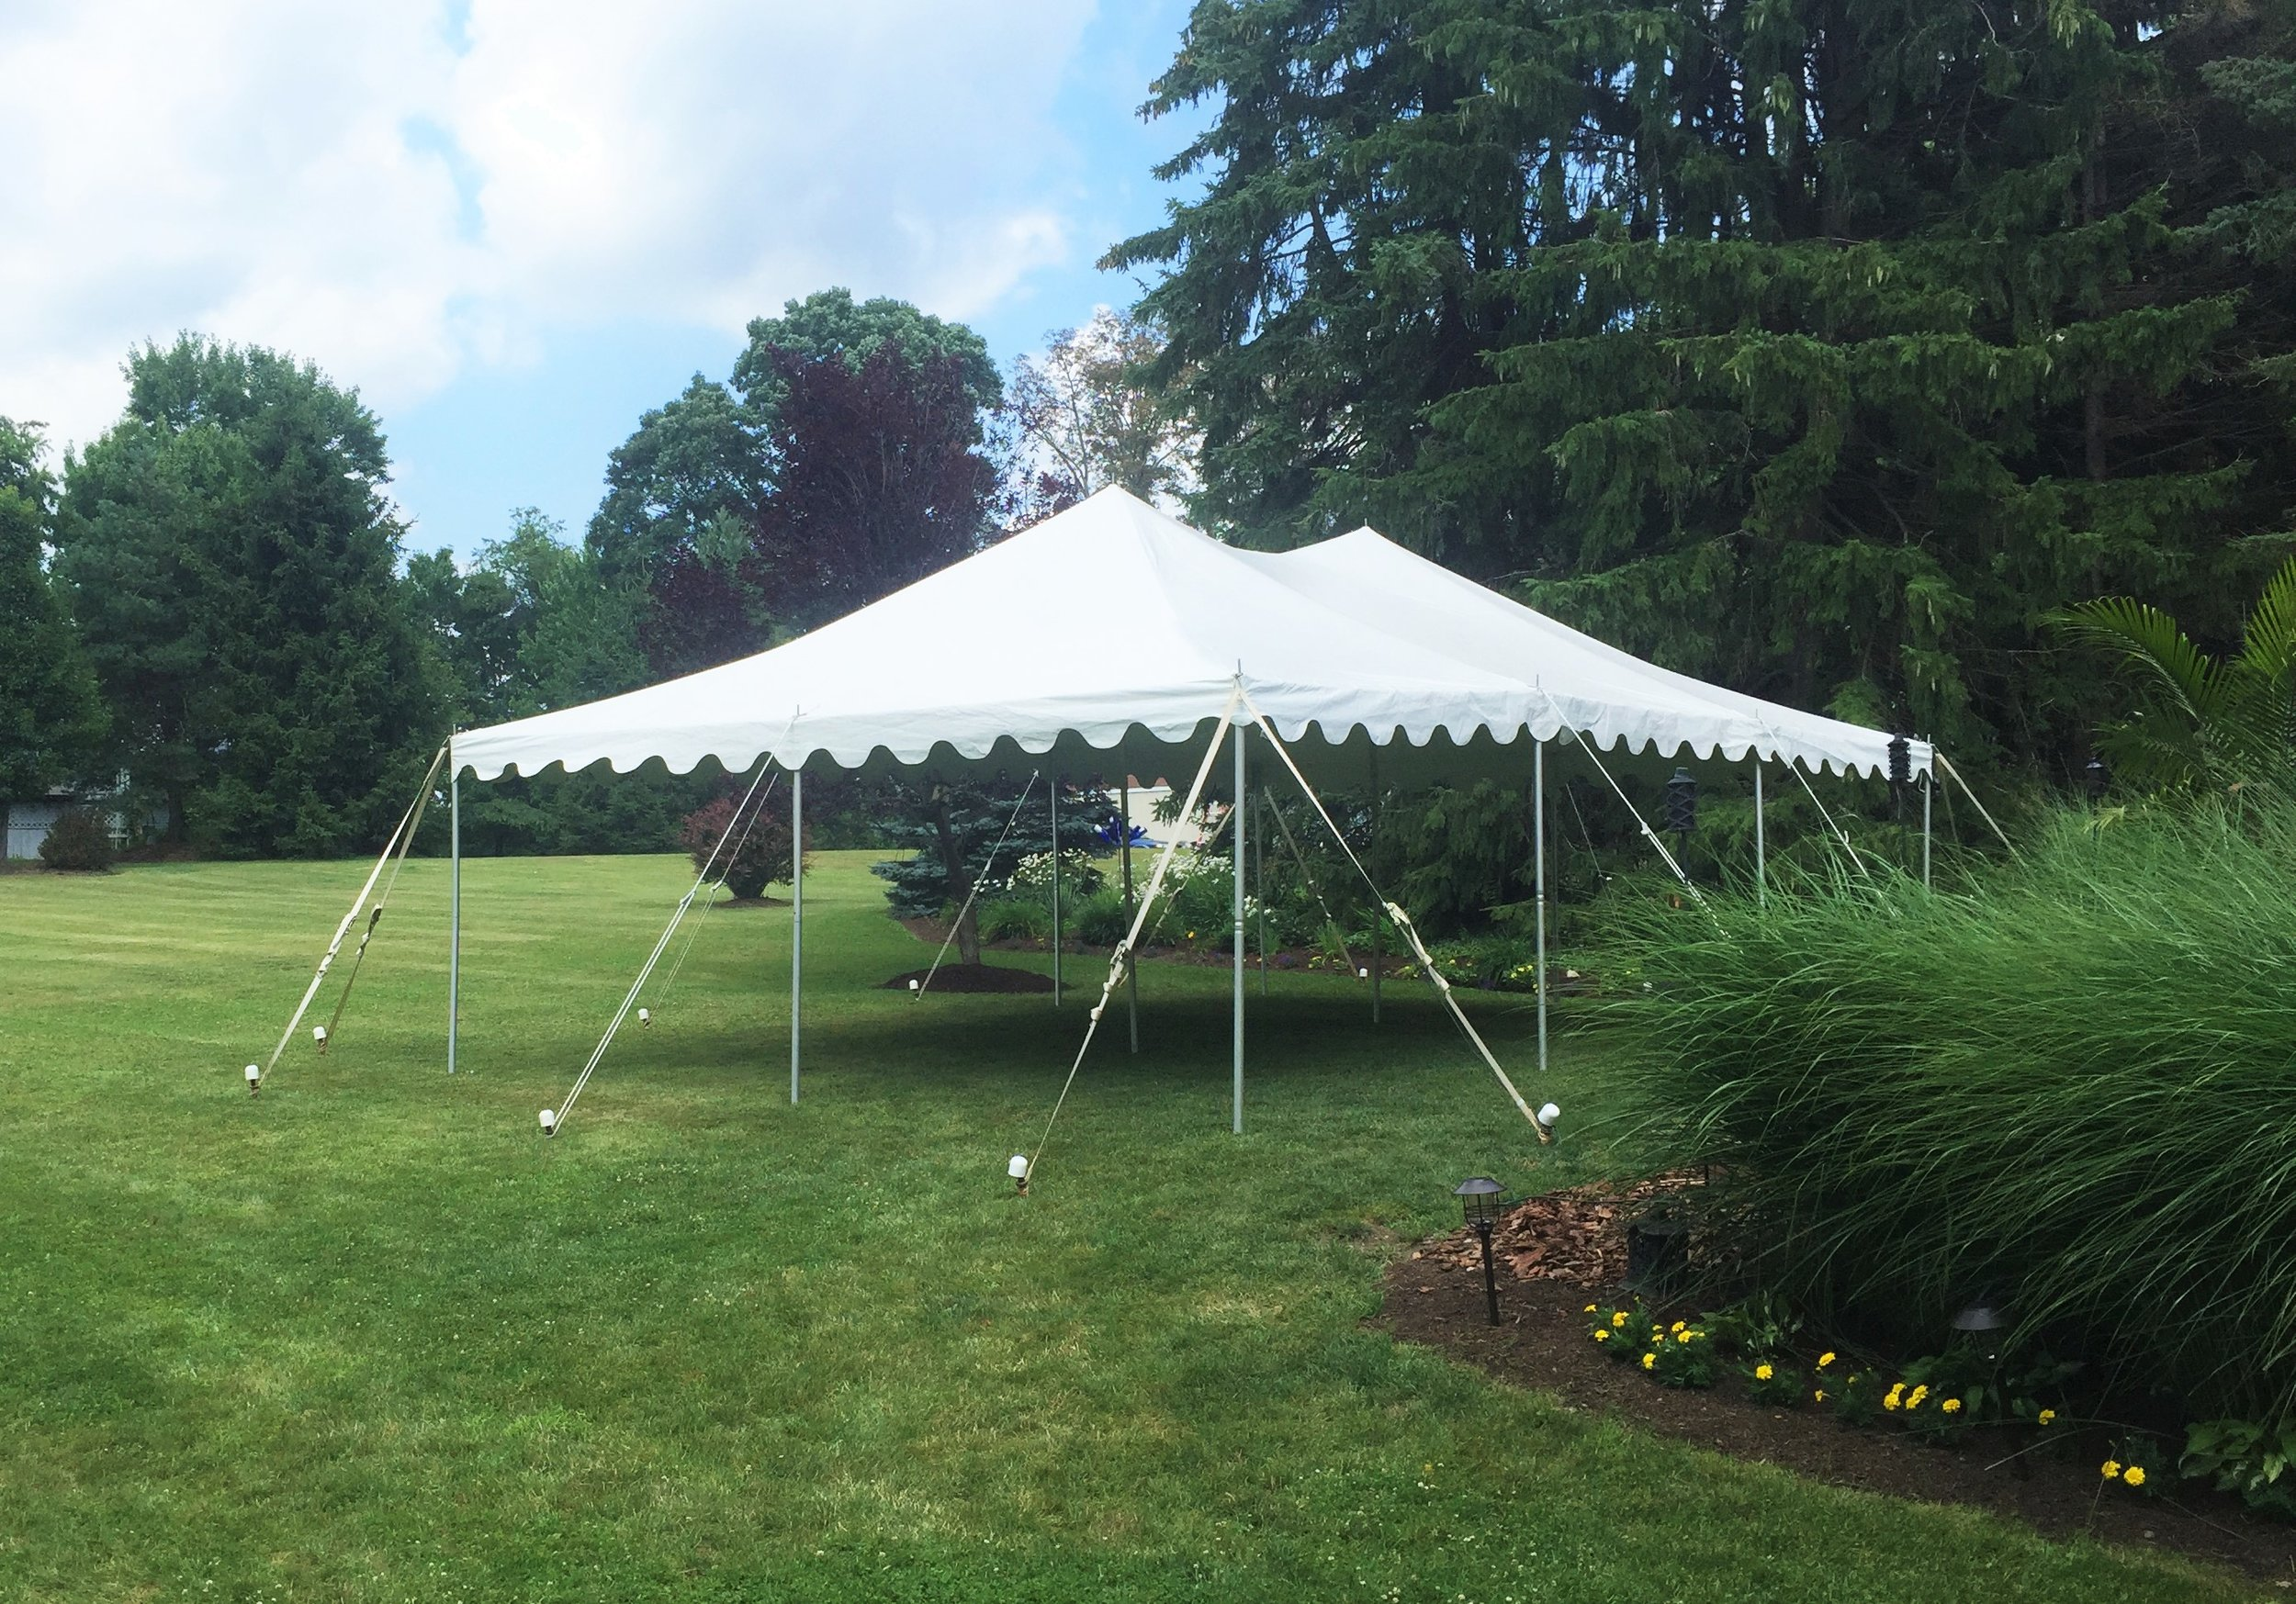 20' x 30' Canopy Tent